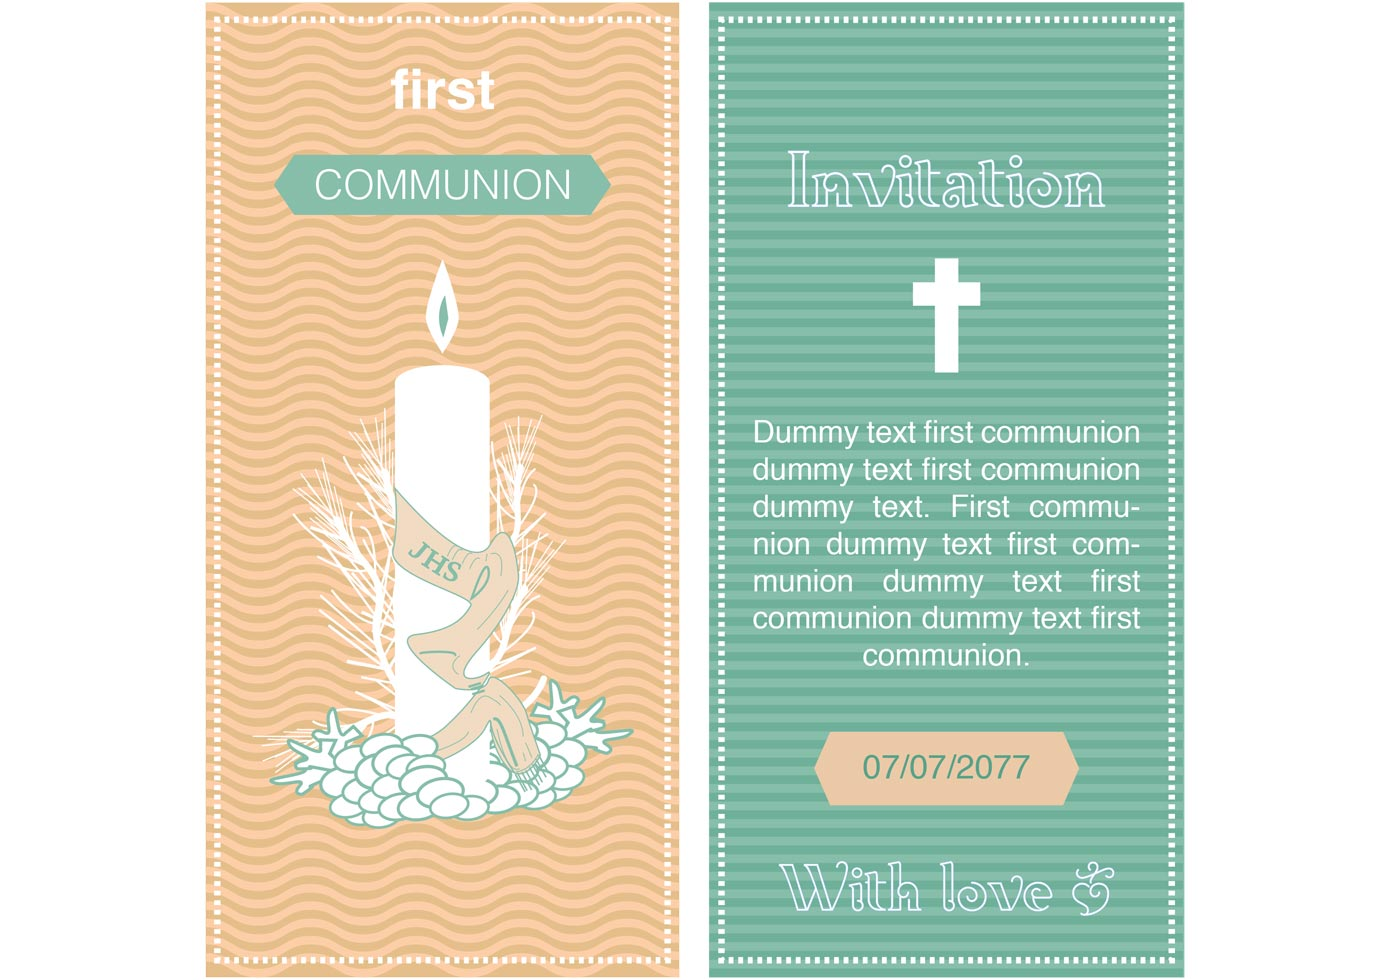 First Communion Invitation Vector - Download Free Vector Art, Stock ... Catholic Chalice